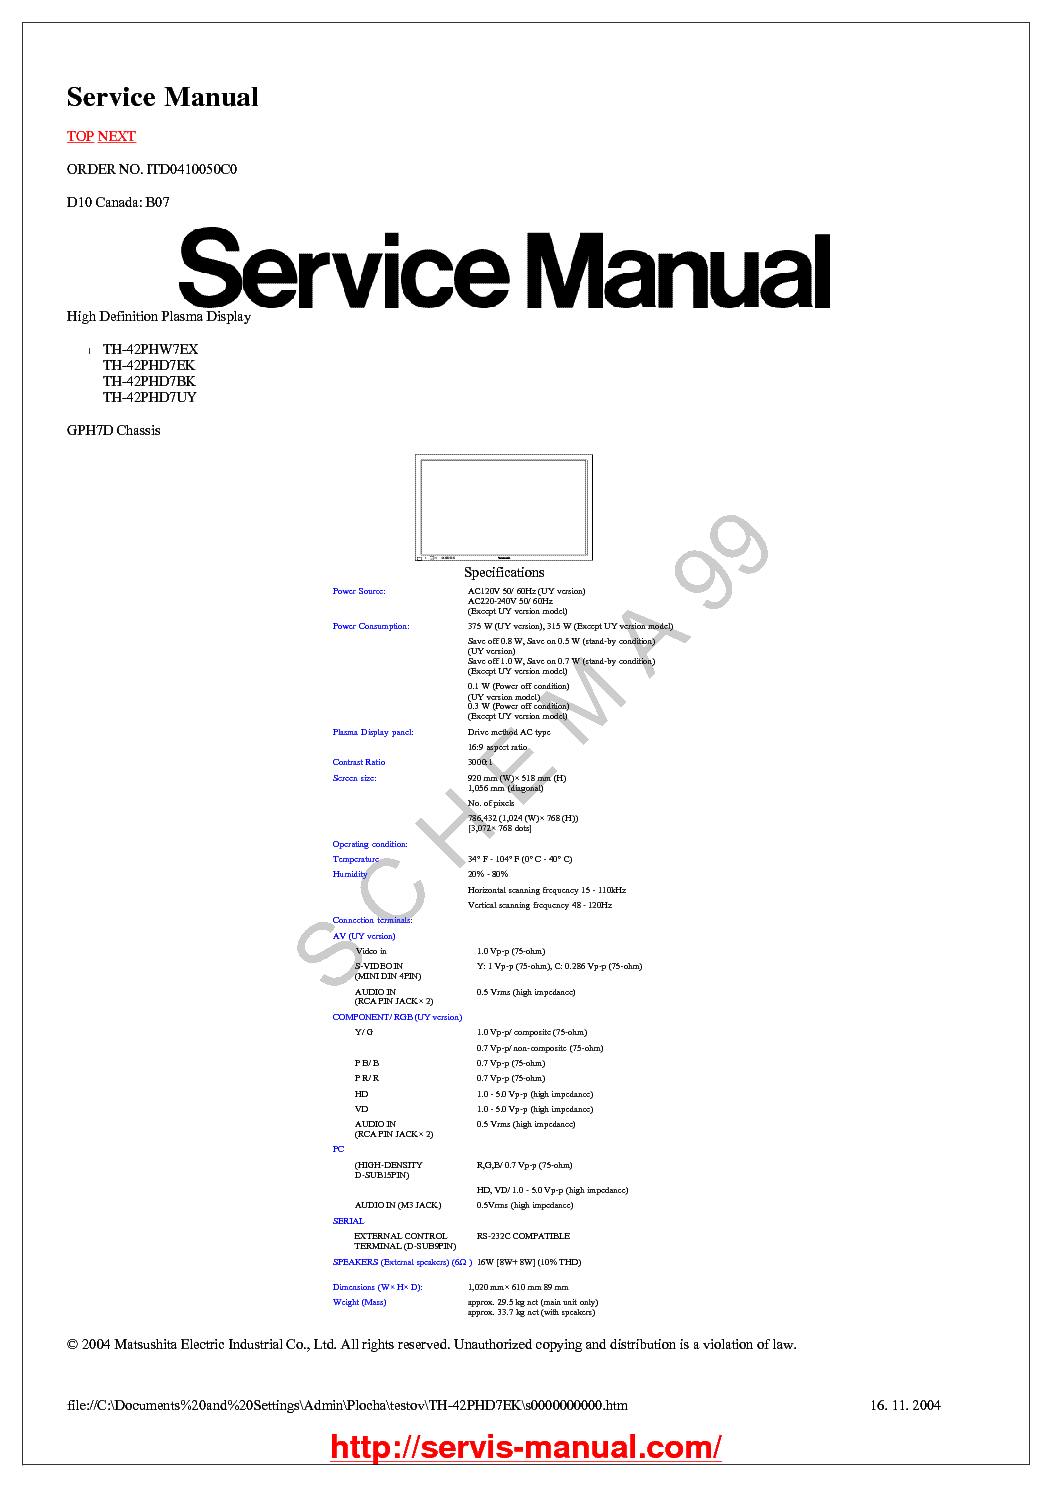 PANASONIC AG-527DVDE Service Manual free download